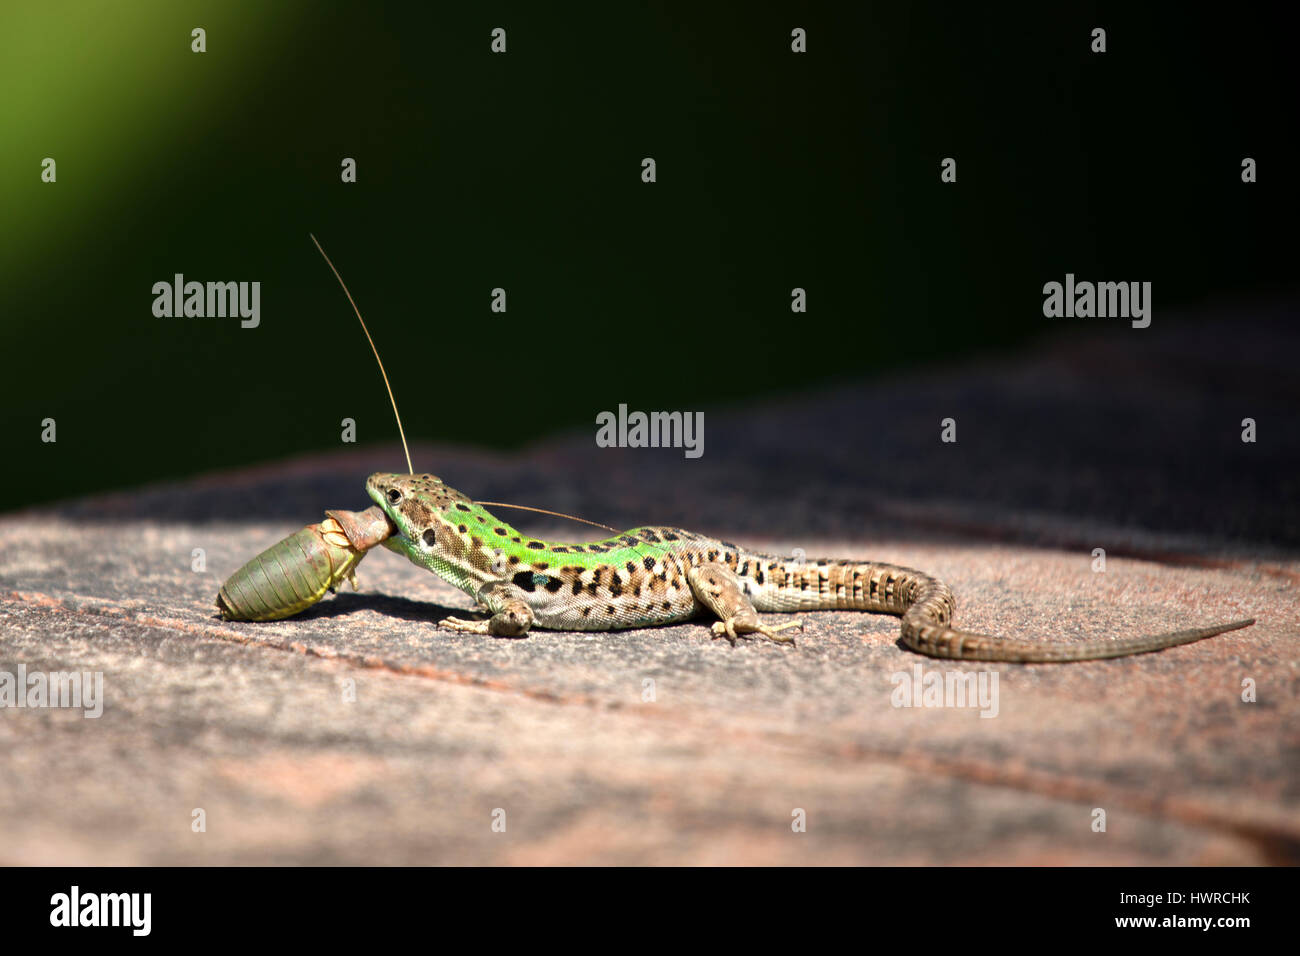 an-italian-green-wall-lizard-holding-a-f